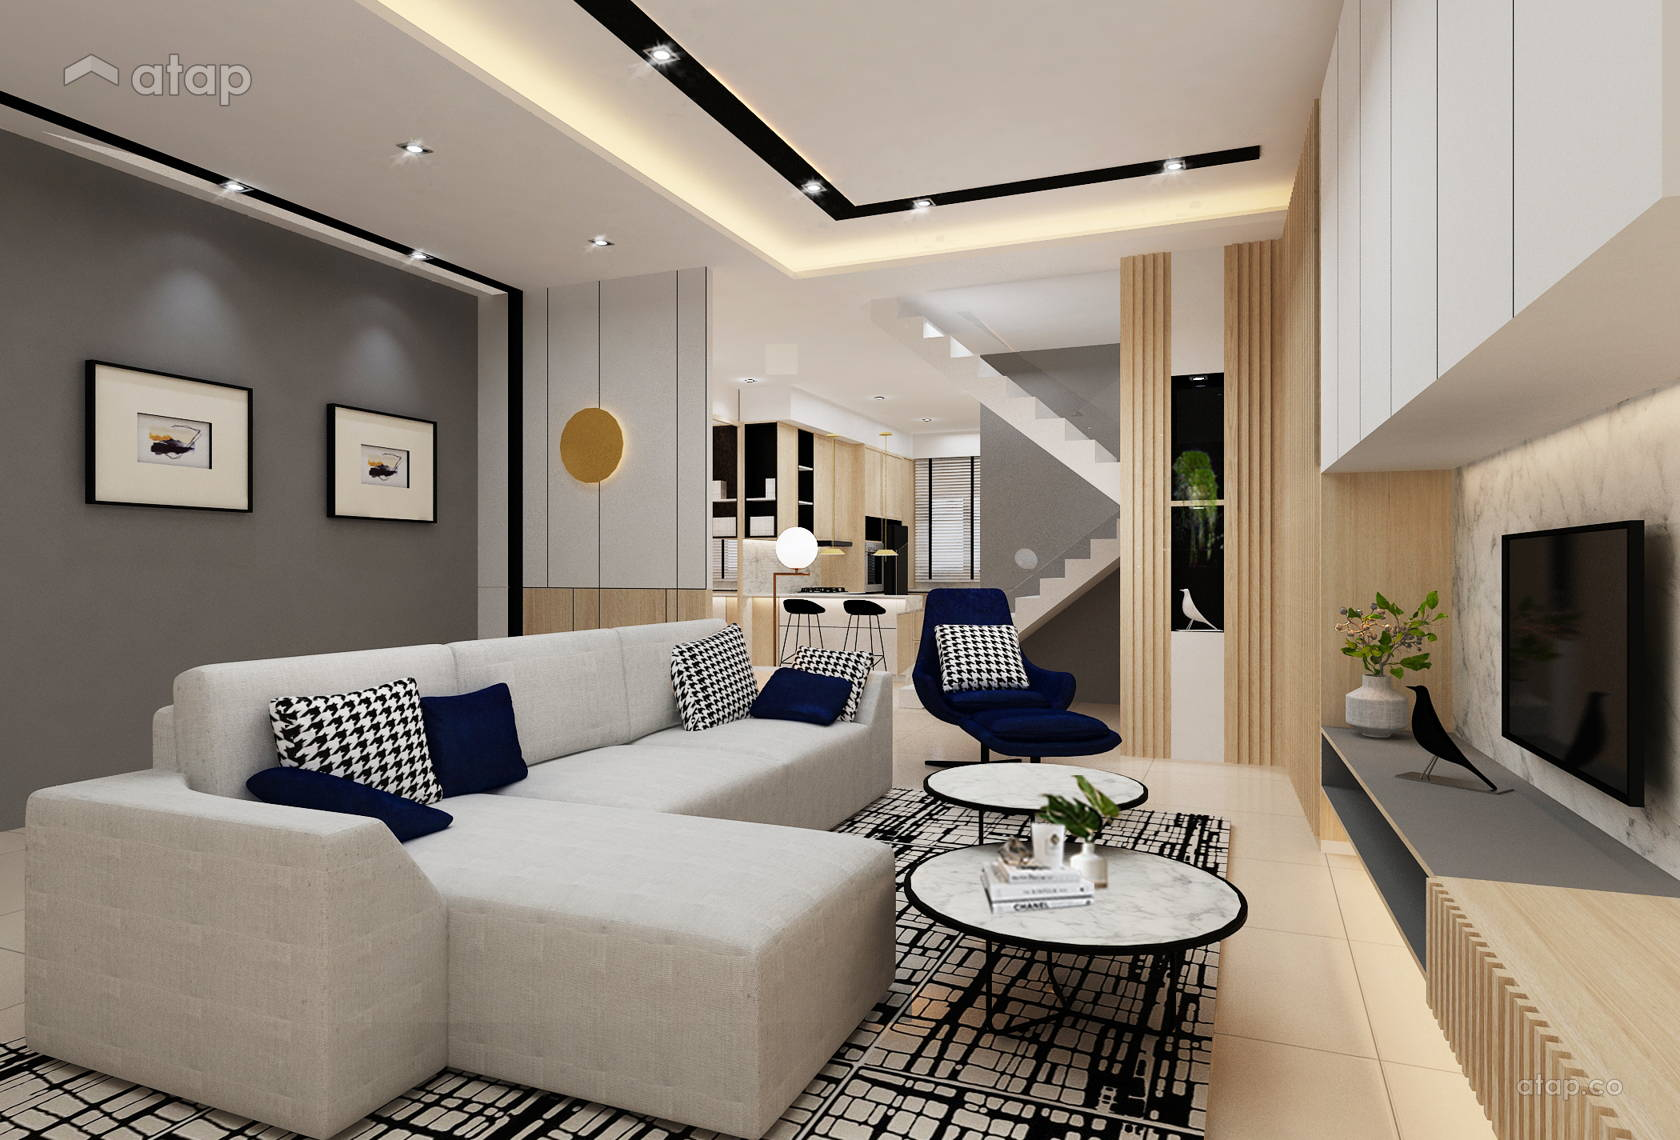 Contemporary Minimalist Double Storey Interior Design Renovation Ideas Photos And Price In Malaysia Atap Co